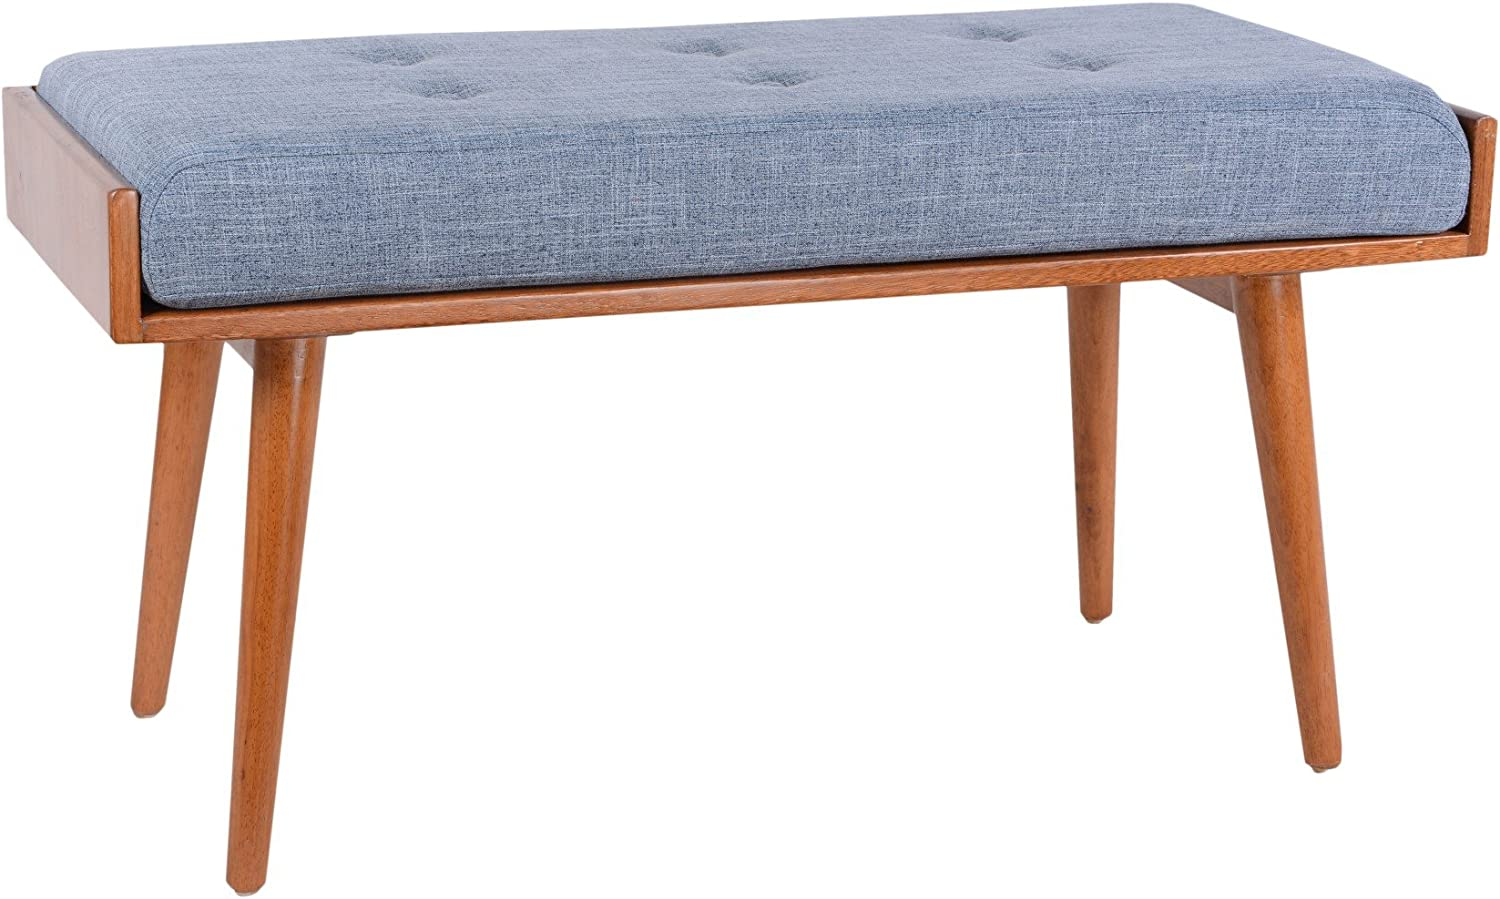 Porthos Home Robin Accent Bench, bluee